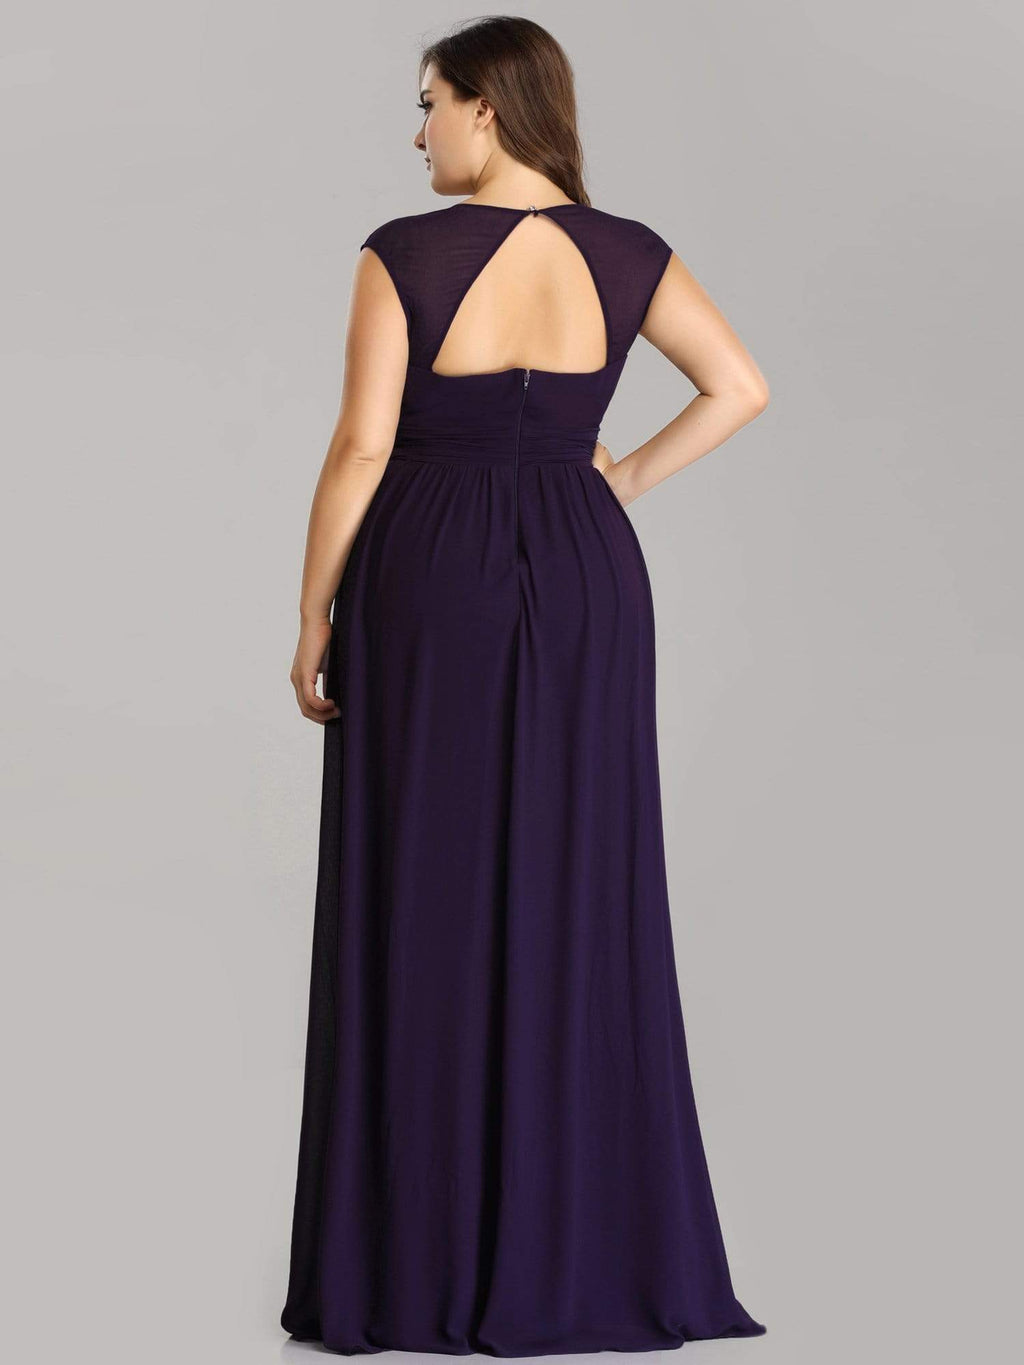 Tina bling cut out back bridesmaid dress in dark purple s22 Express NZ wide!